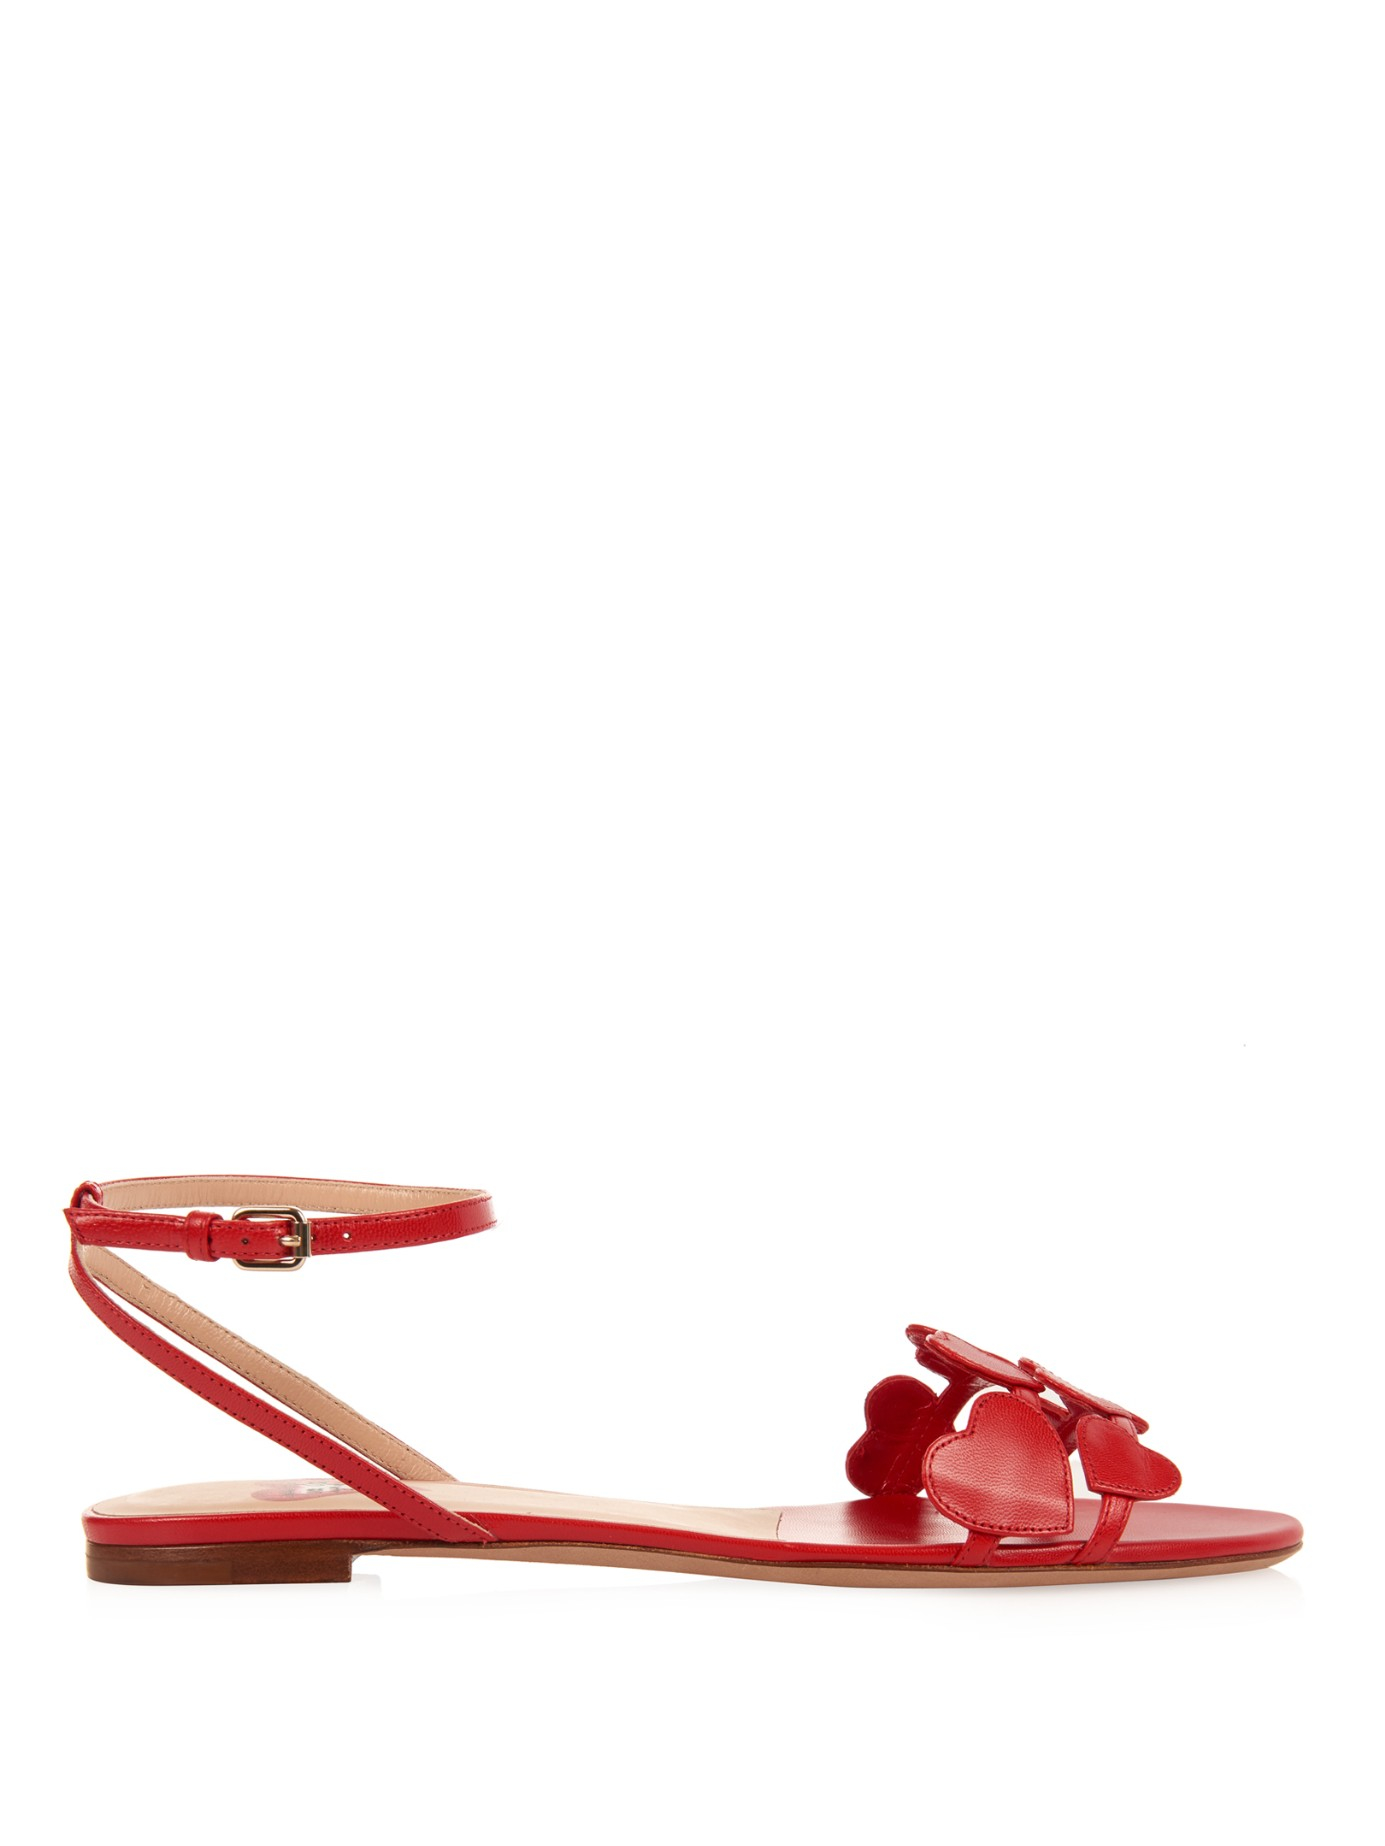 Womens Flats Valentino Lamour Sandals Red Flats valentino Under Discount